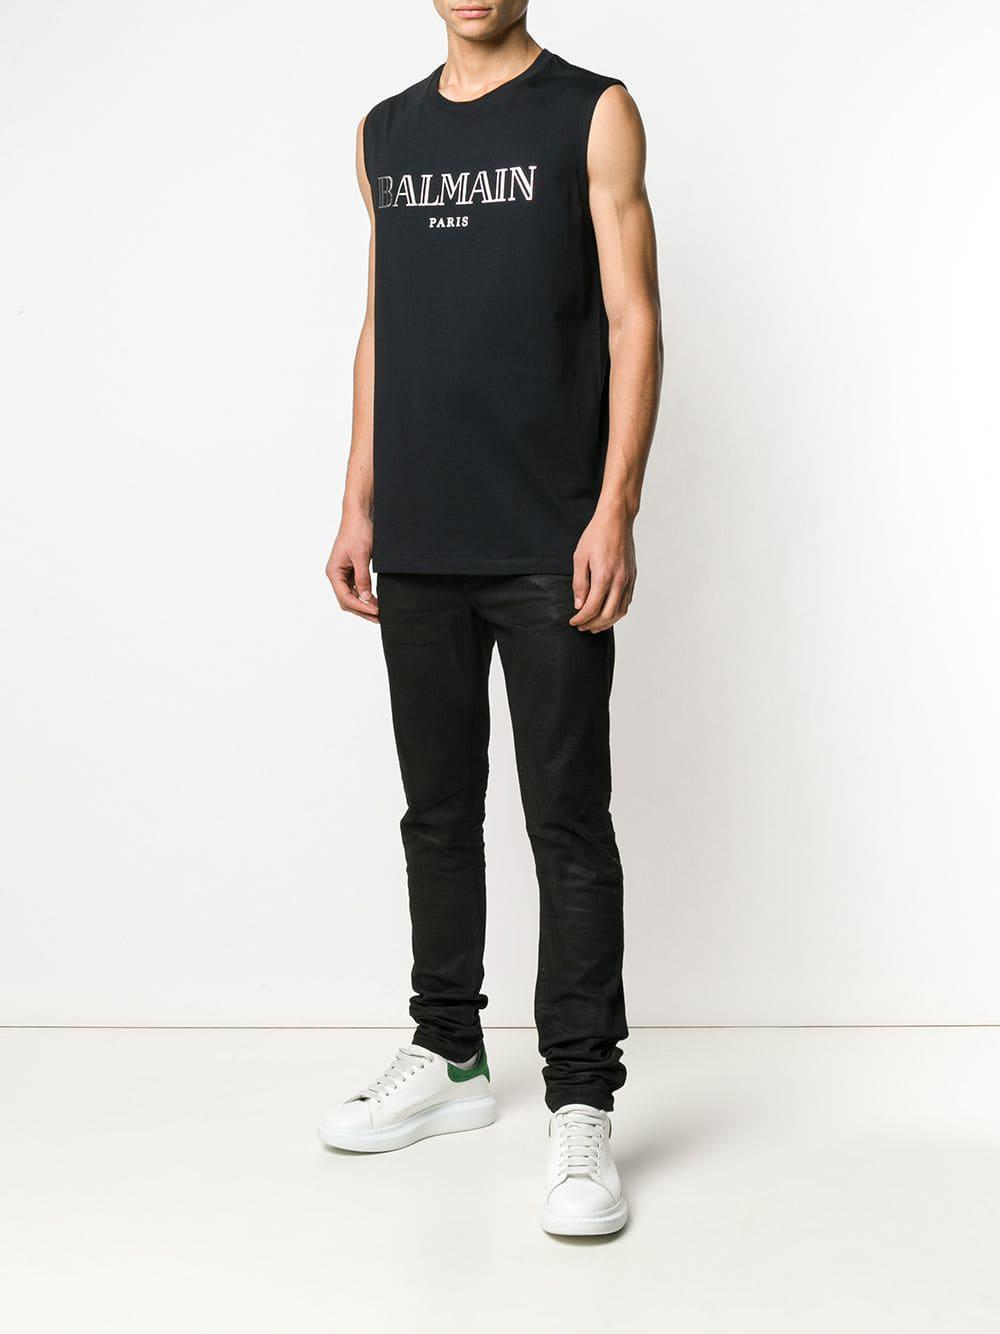 3dfefe0d Balmain Logo Print T-shirt in Black for Men - Lyst